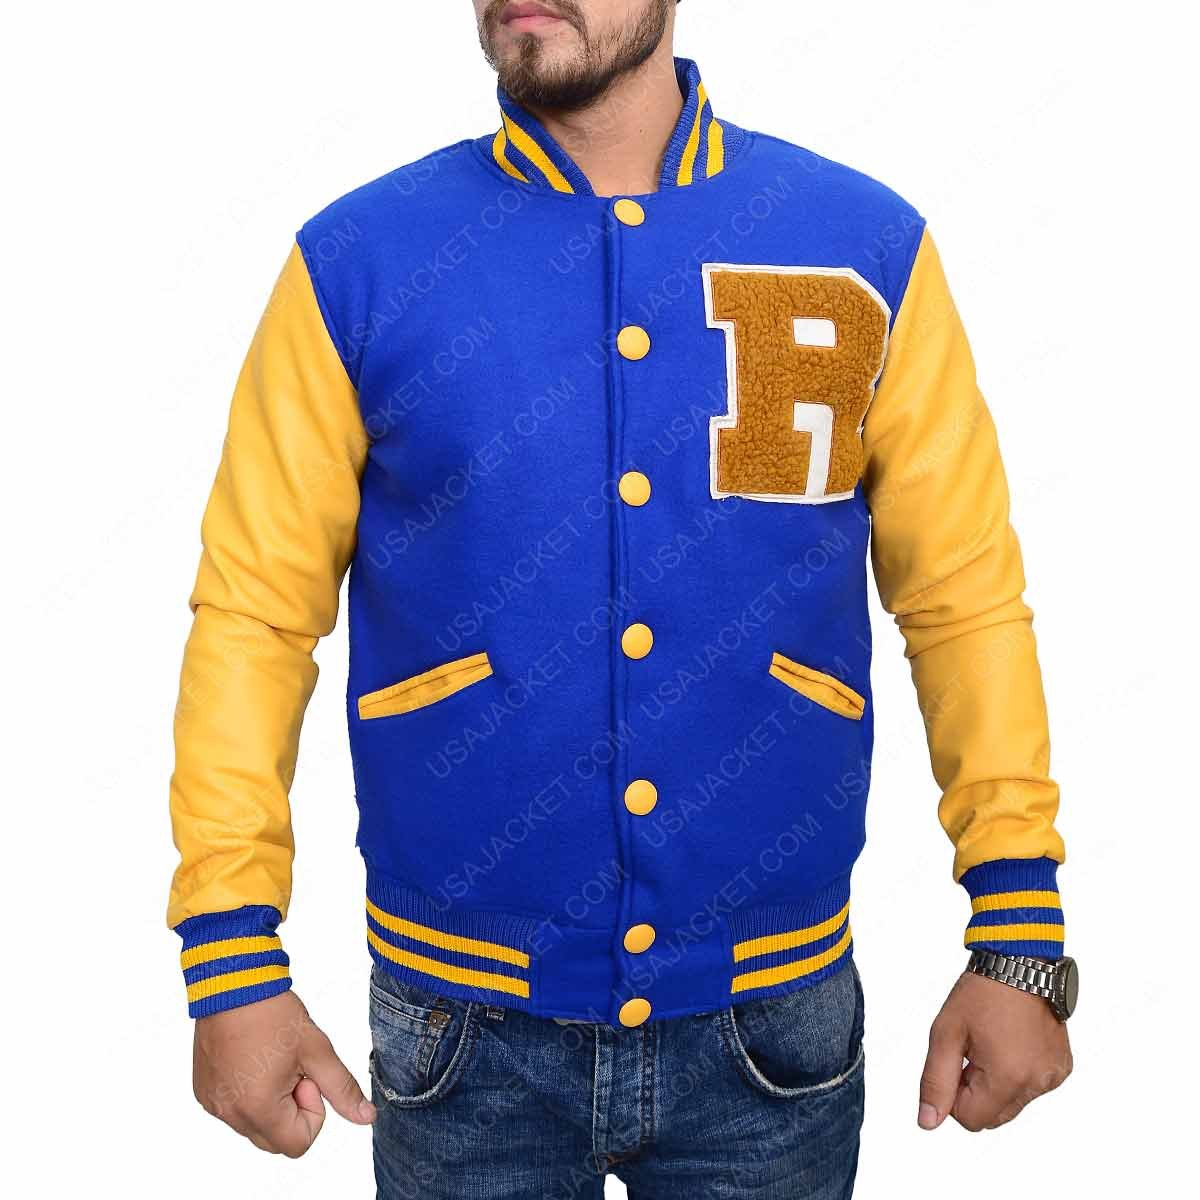 KJ Apa Riverdale Jacket R Logo Archie Andrews Letterman Varsity Outfit Yellow and Blue)